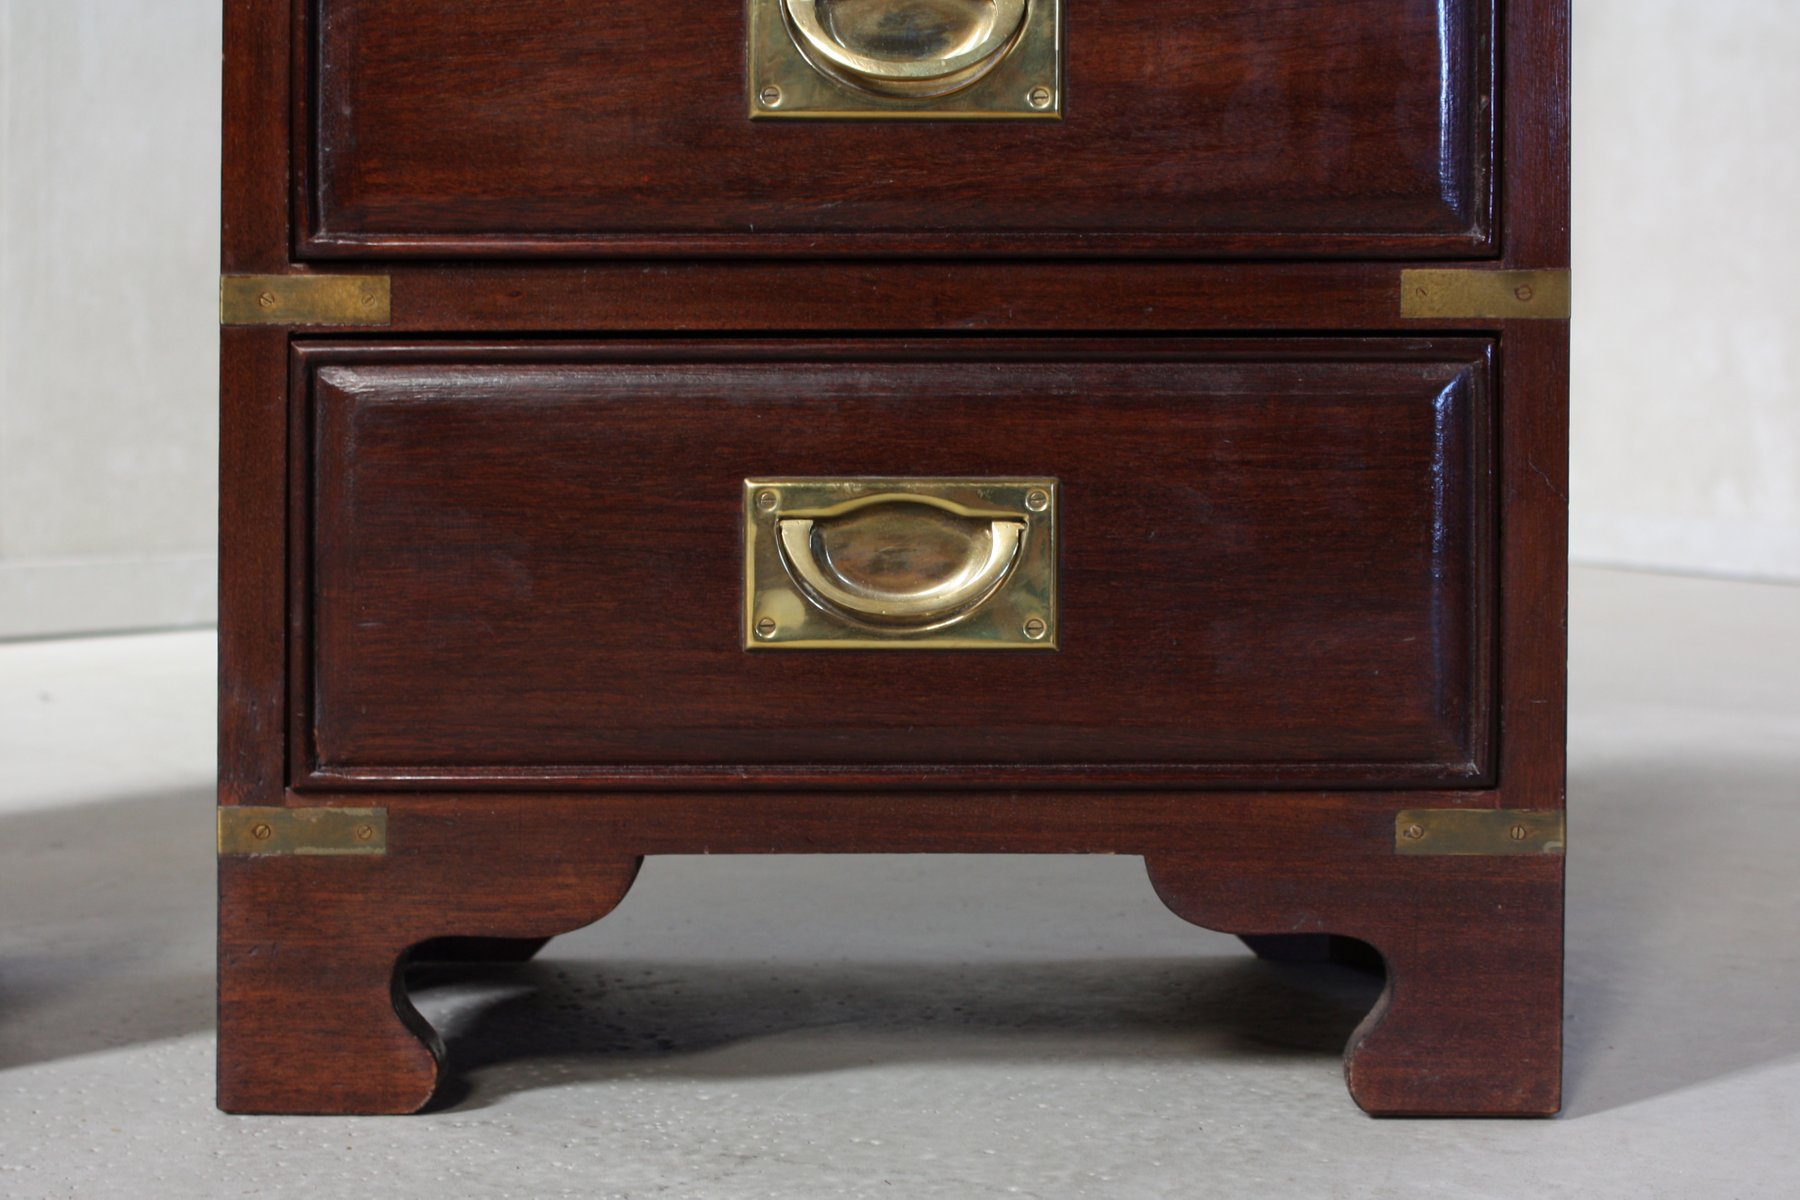 Vintage Campaign Chest of Drawers 1970s Set of 2 for sale at Pamono